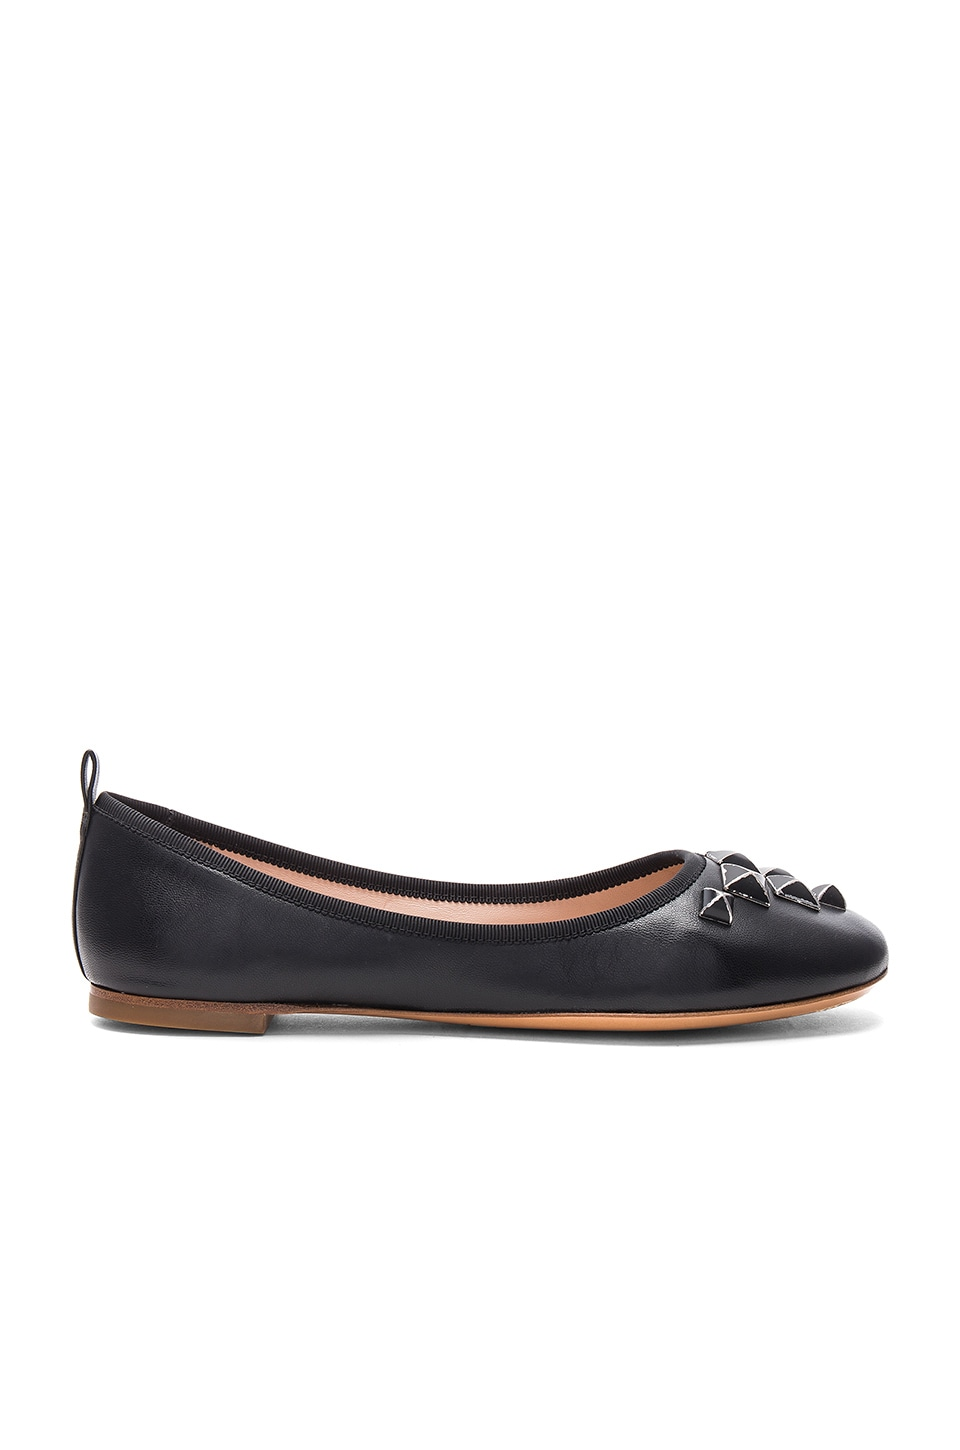 Cleo Studded Ballerina Flat by Marc Jacobs